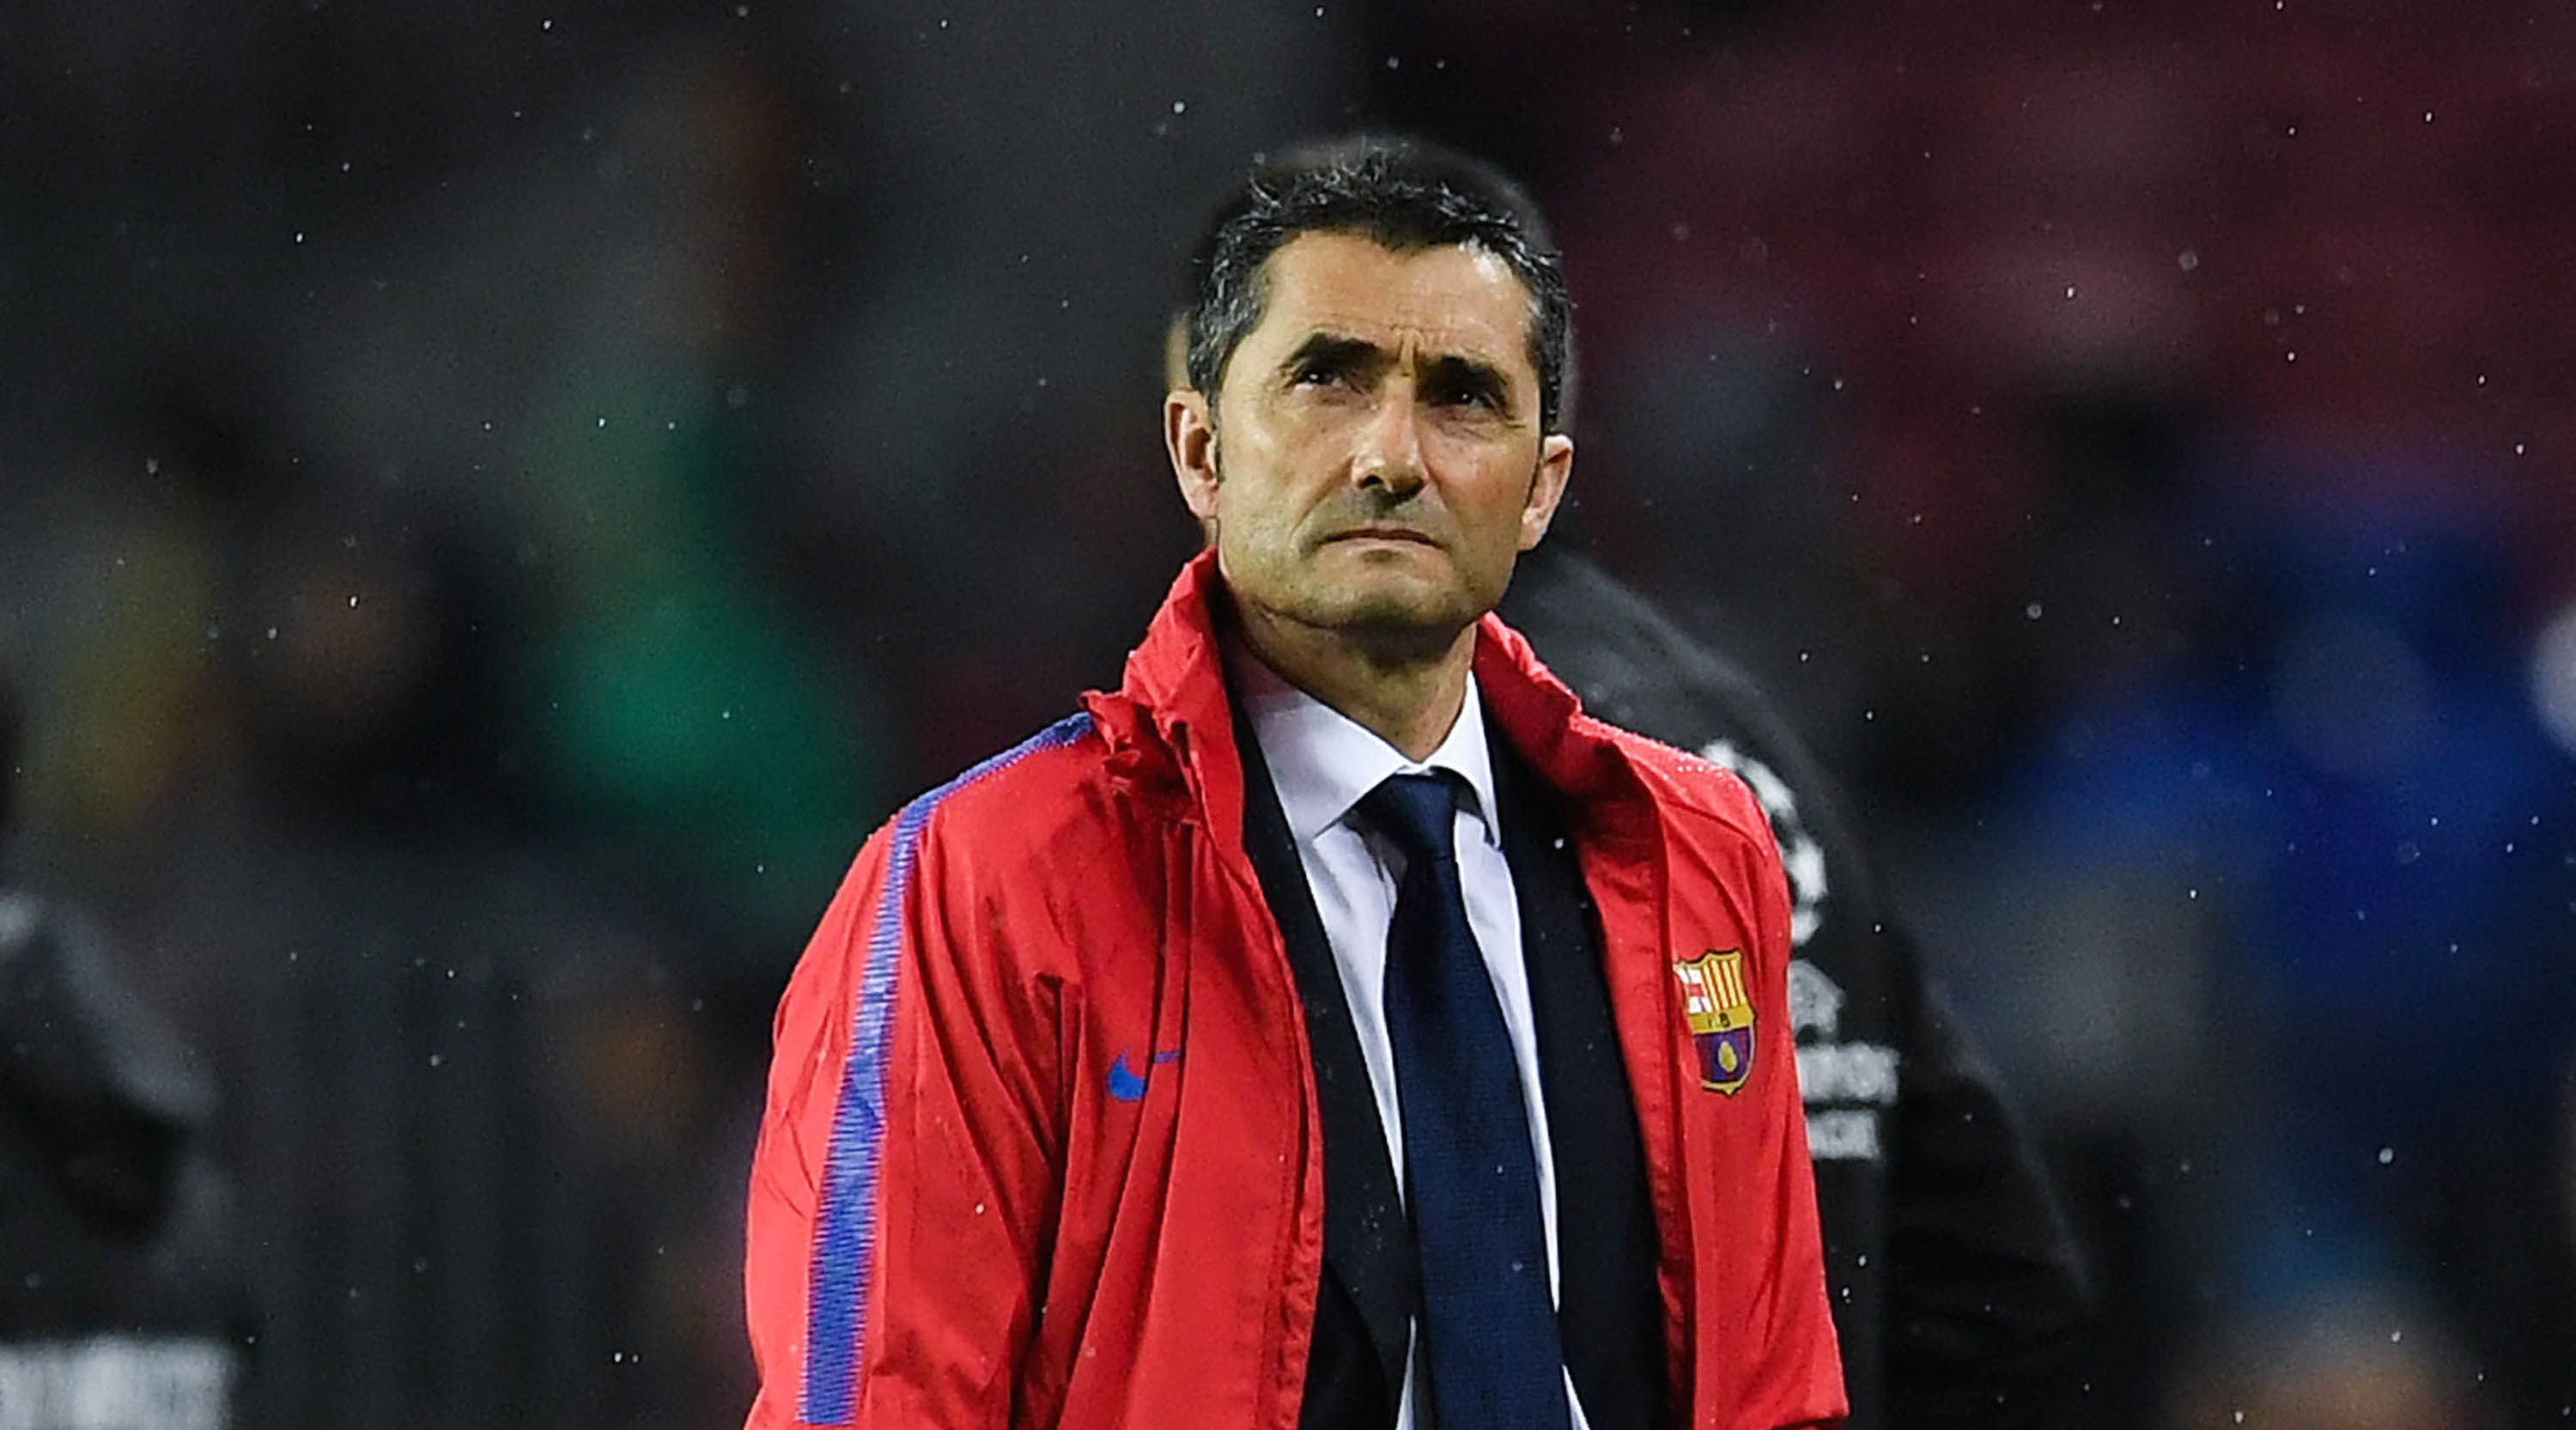 BARCELONA, SPAIN - OCTOBER 18: Head coach Ernesto Valverde of FC Barcelona during the UEFA Champions League group D match between FC Barcelona and Olympiakos Piraeus at Camp Nou on October 18, 2017 in Barcelona, Spain. (Photo by David Ramos/Getty Images)